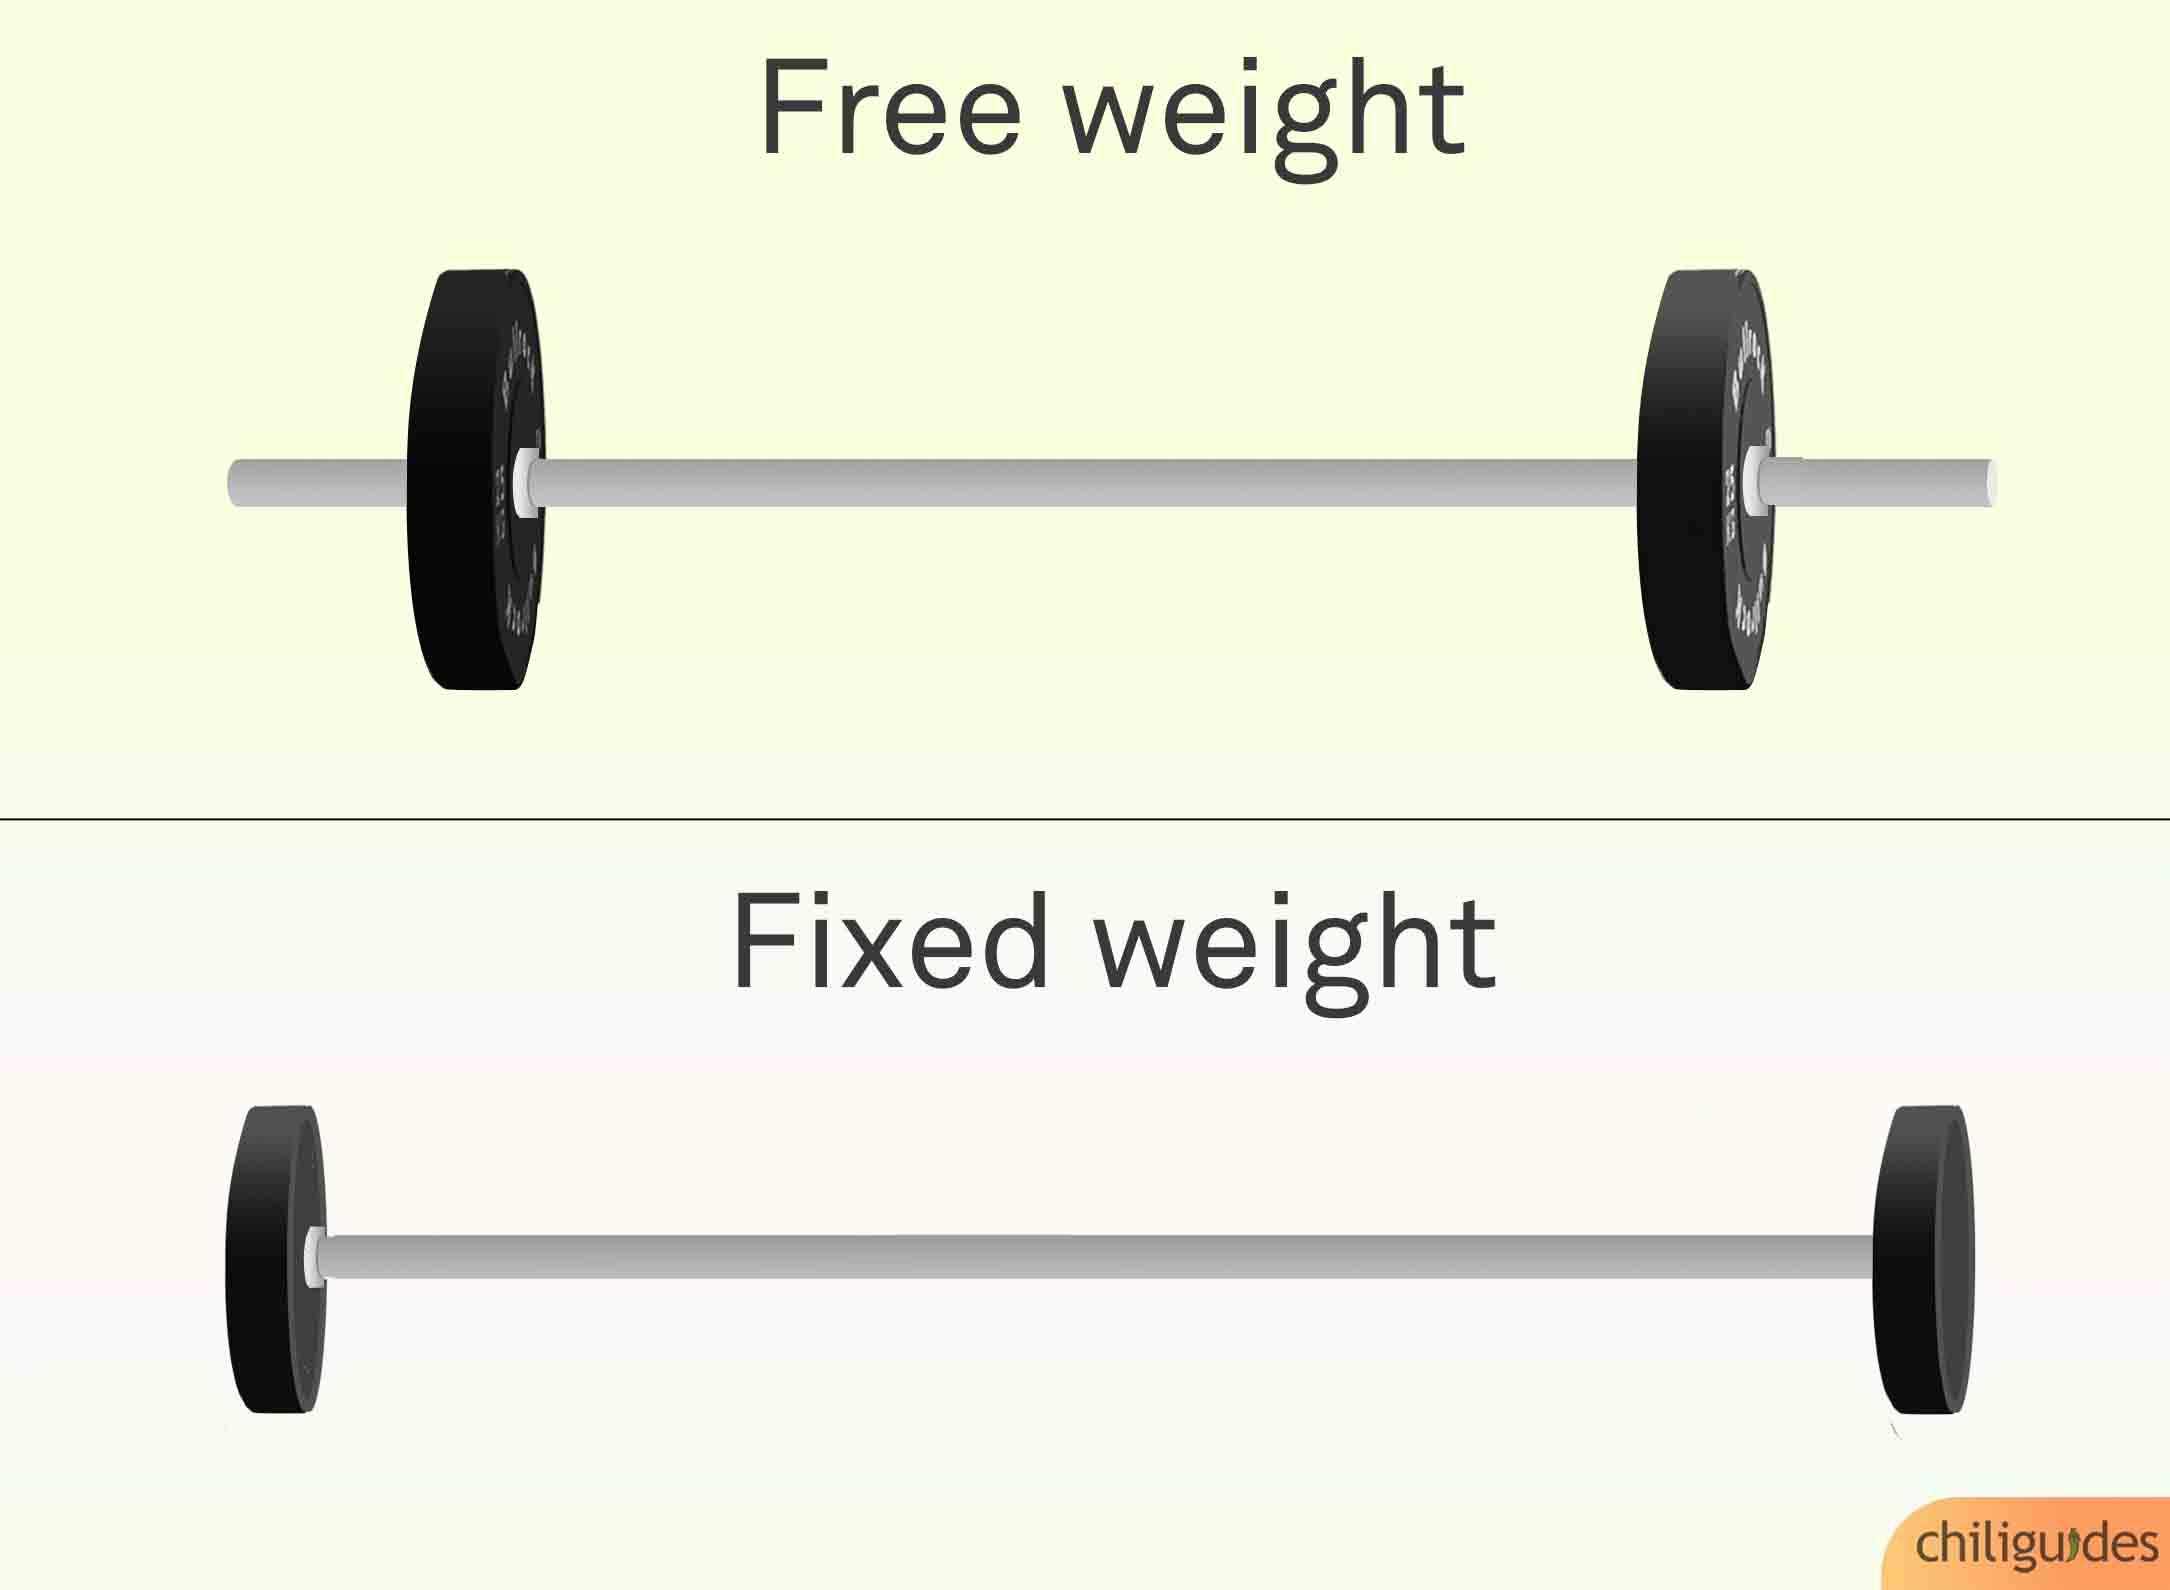 <p><b>Fixed weight barbells are only practical for commercial use.</b></p>